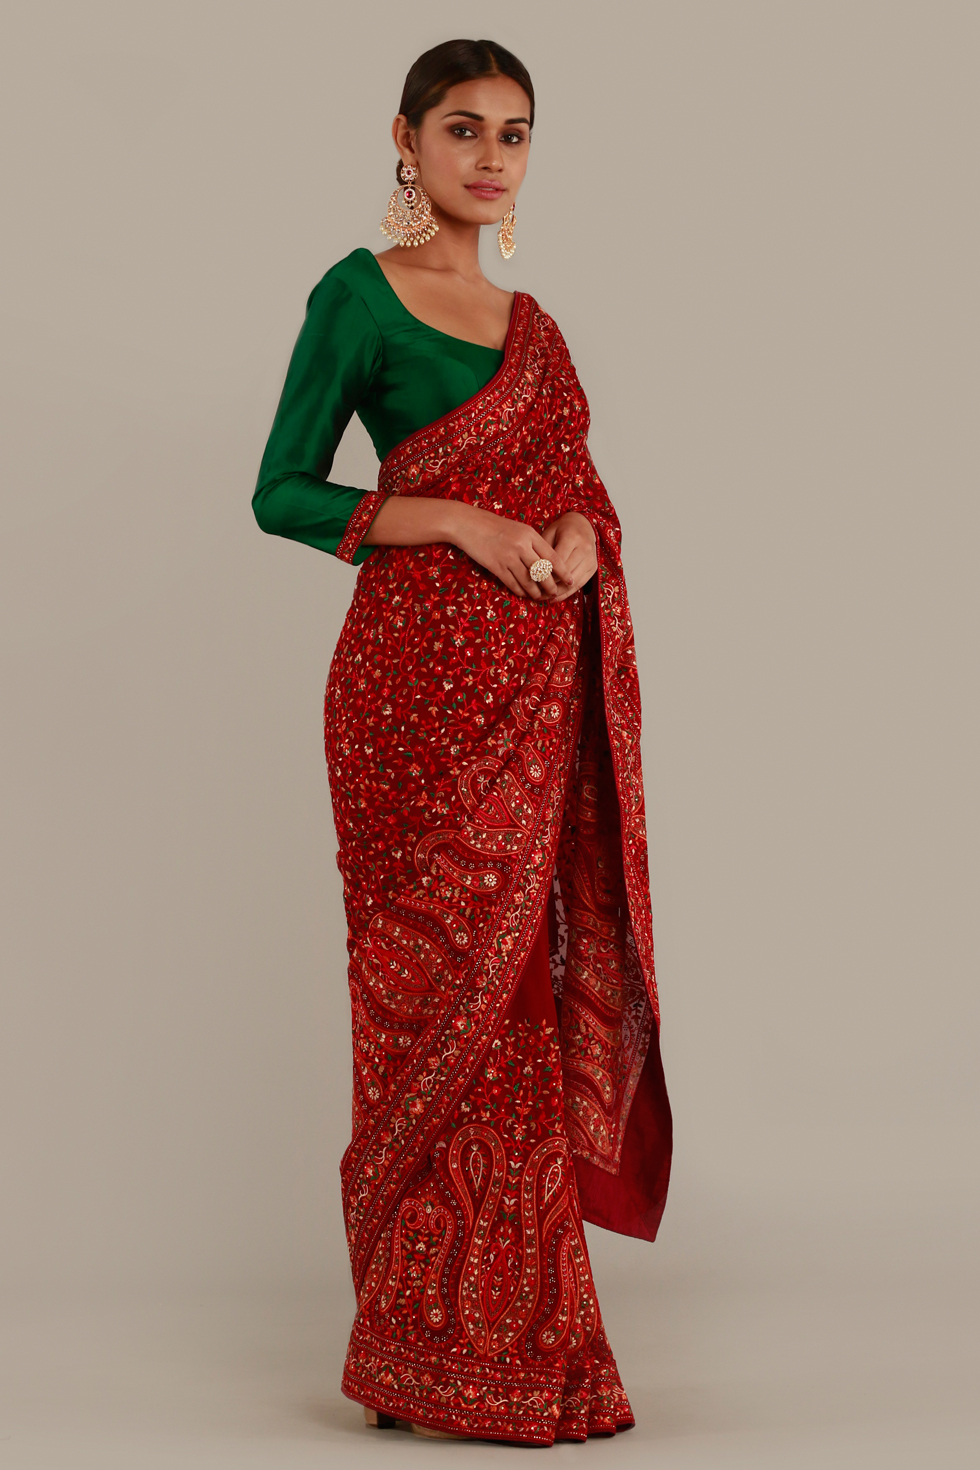 Deep red classic saree with multi coloured thread work and contrast forest green choli